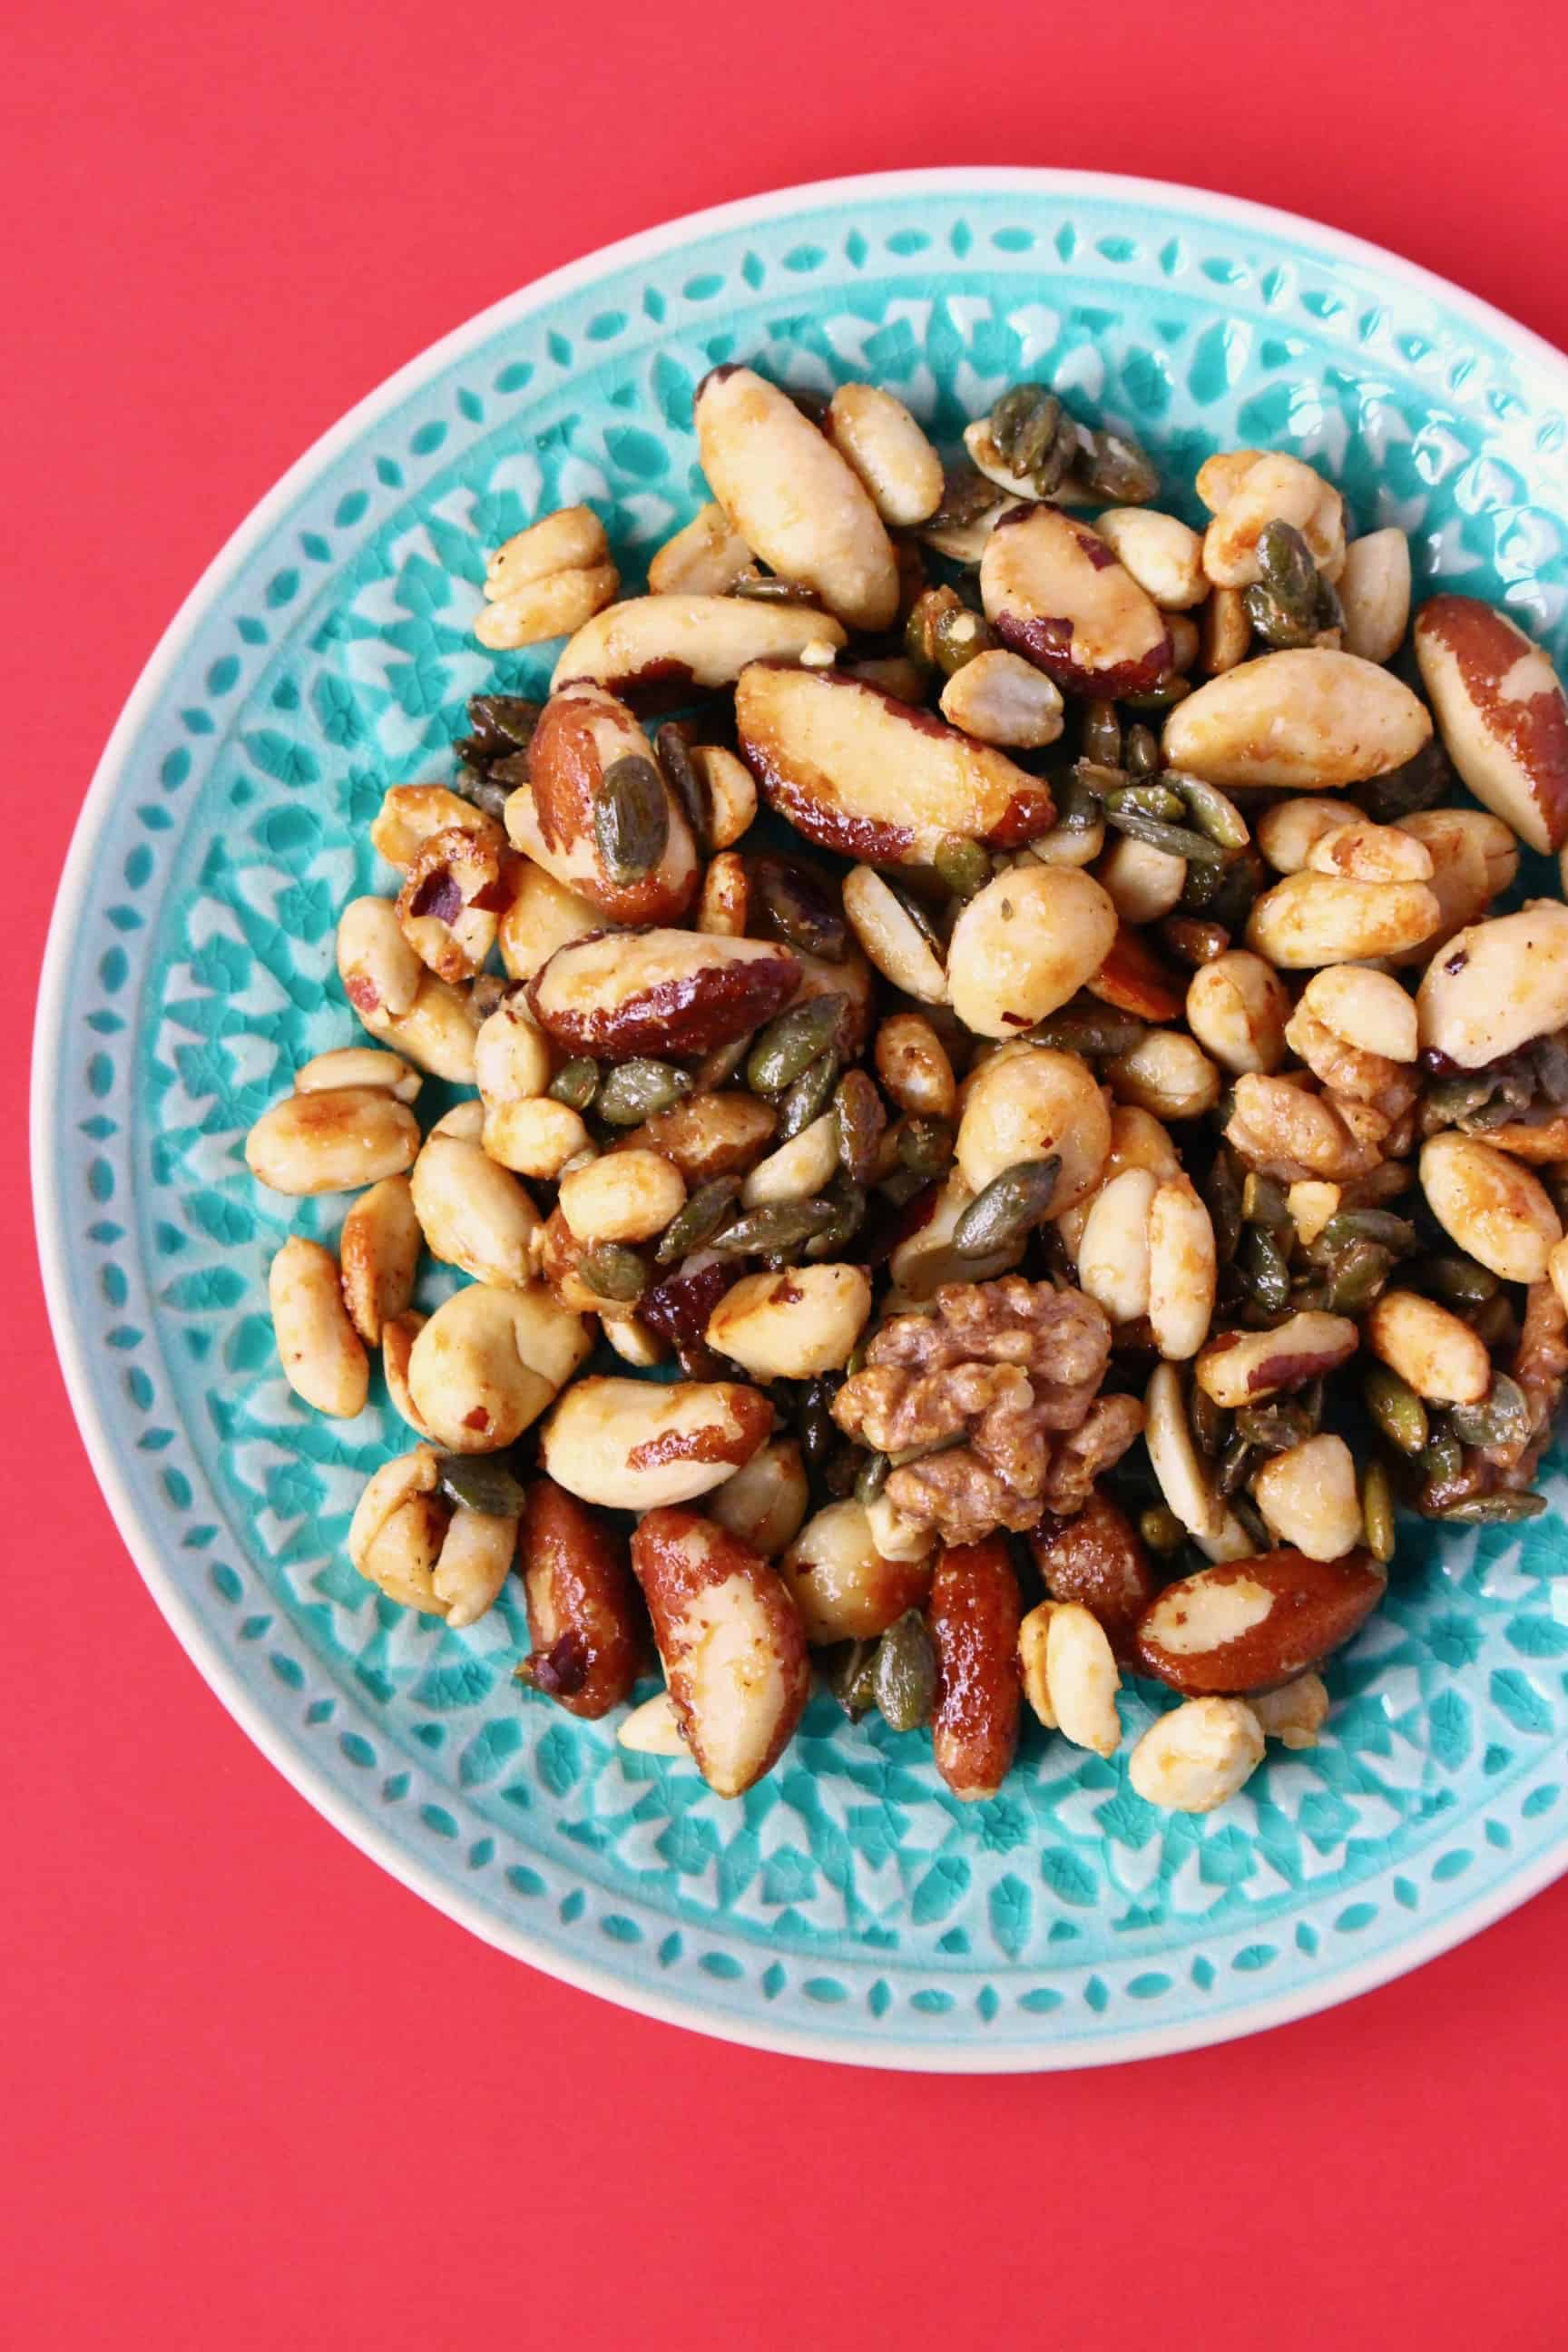 A pile of brown candied nuts on a green plate against a red background